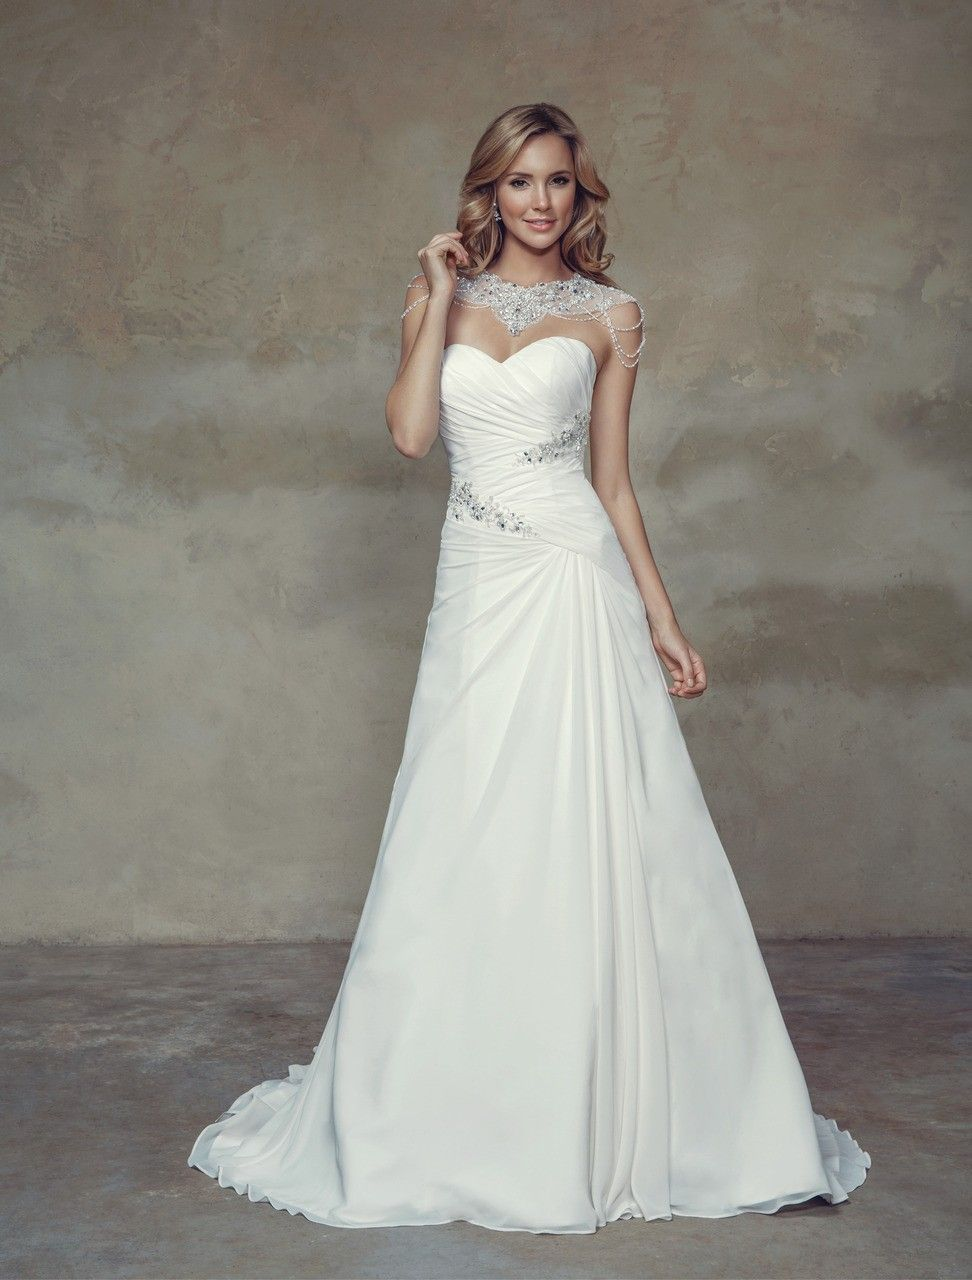 Mia solano wedding dress for sale that comes with the shoulder mia solano wedding dress for sale that comes with the shoulder necklace never worn a gorgeous gown combining glamour and sophistication the mia solano ombrellifo Choice Image